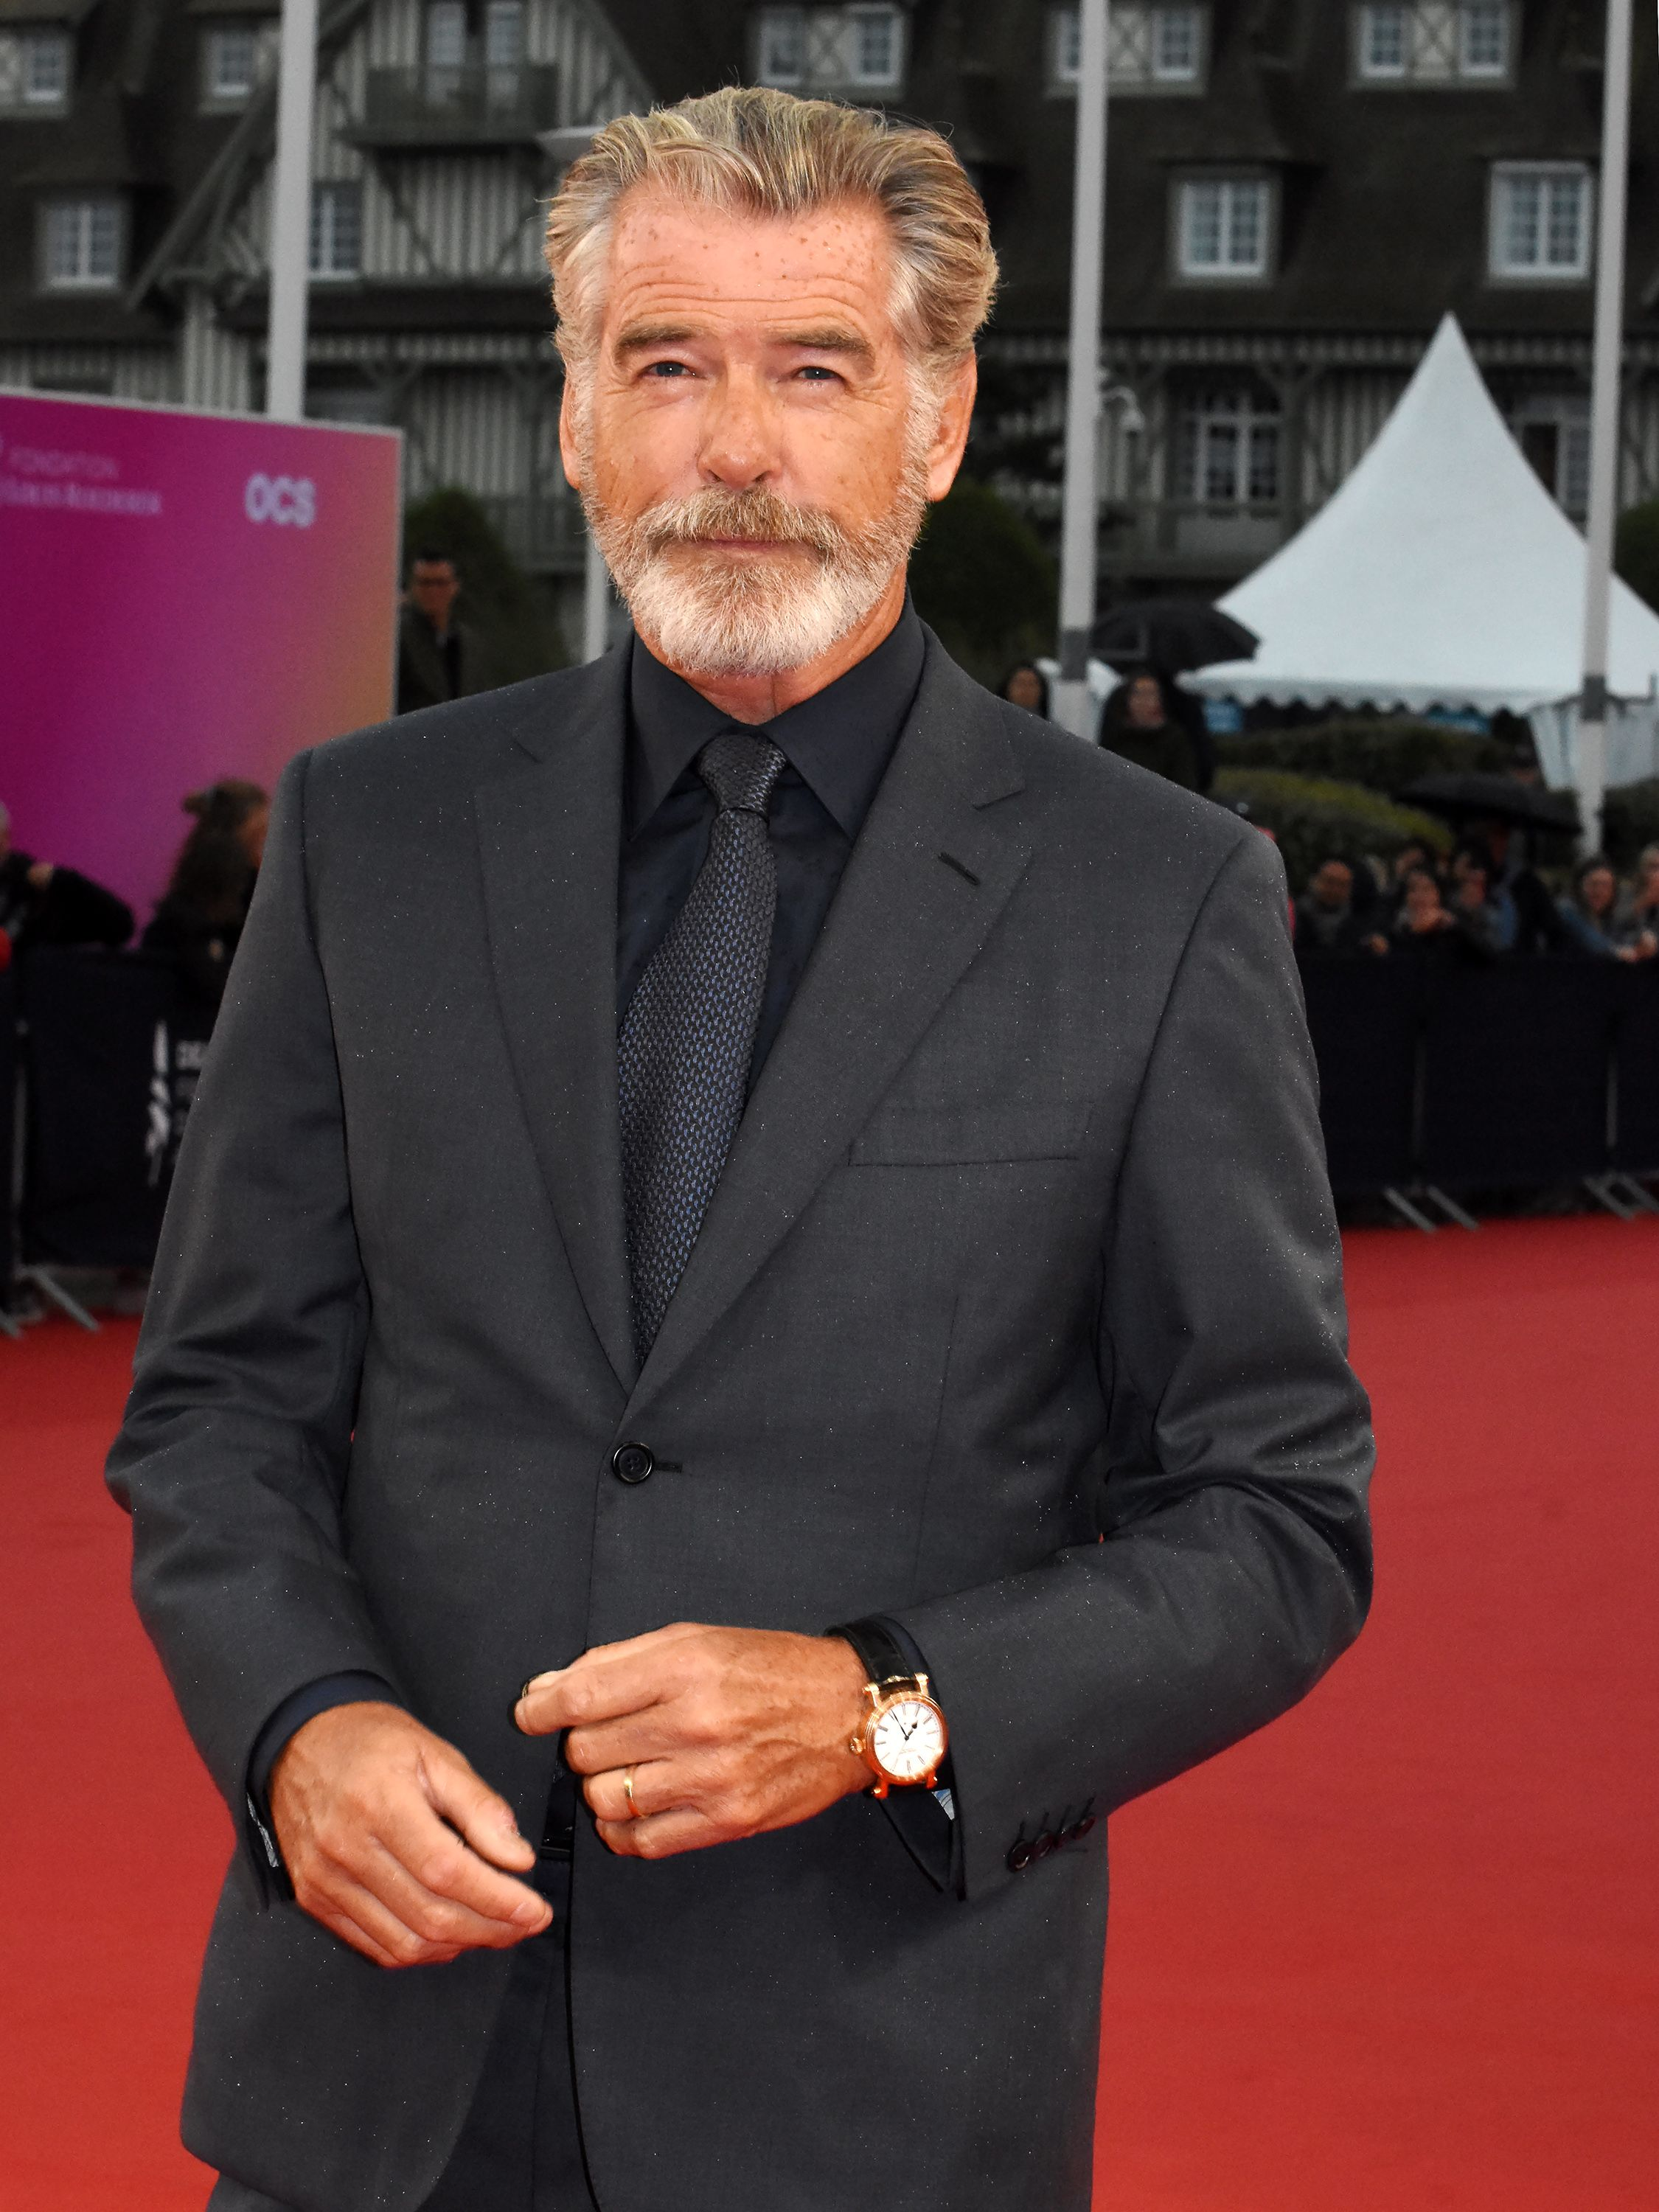 It's Time for a Female 007, says Former James Bond Pierce Brosnan